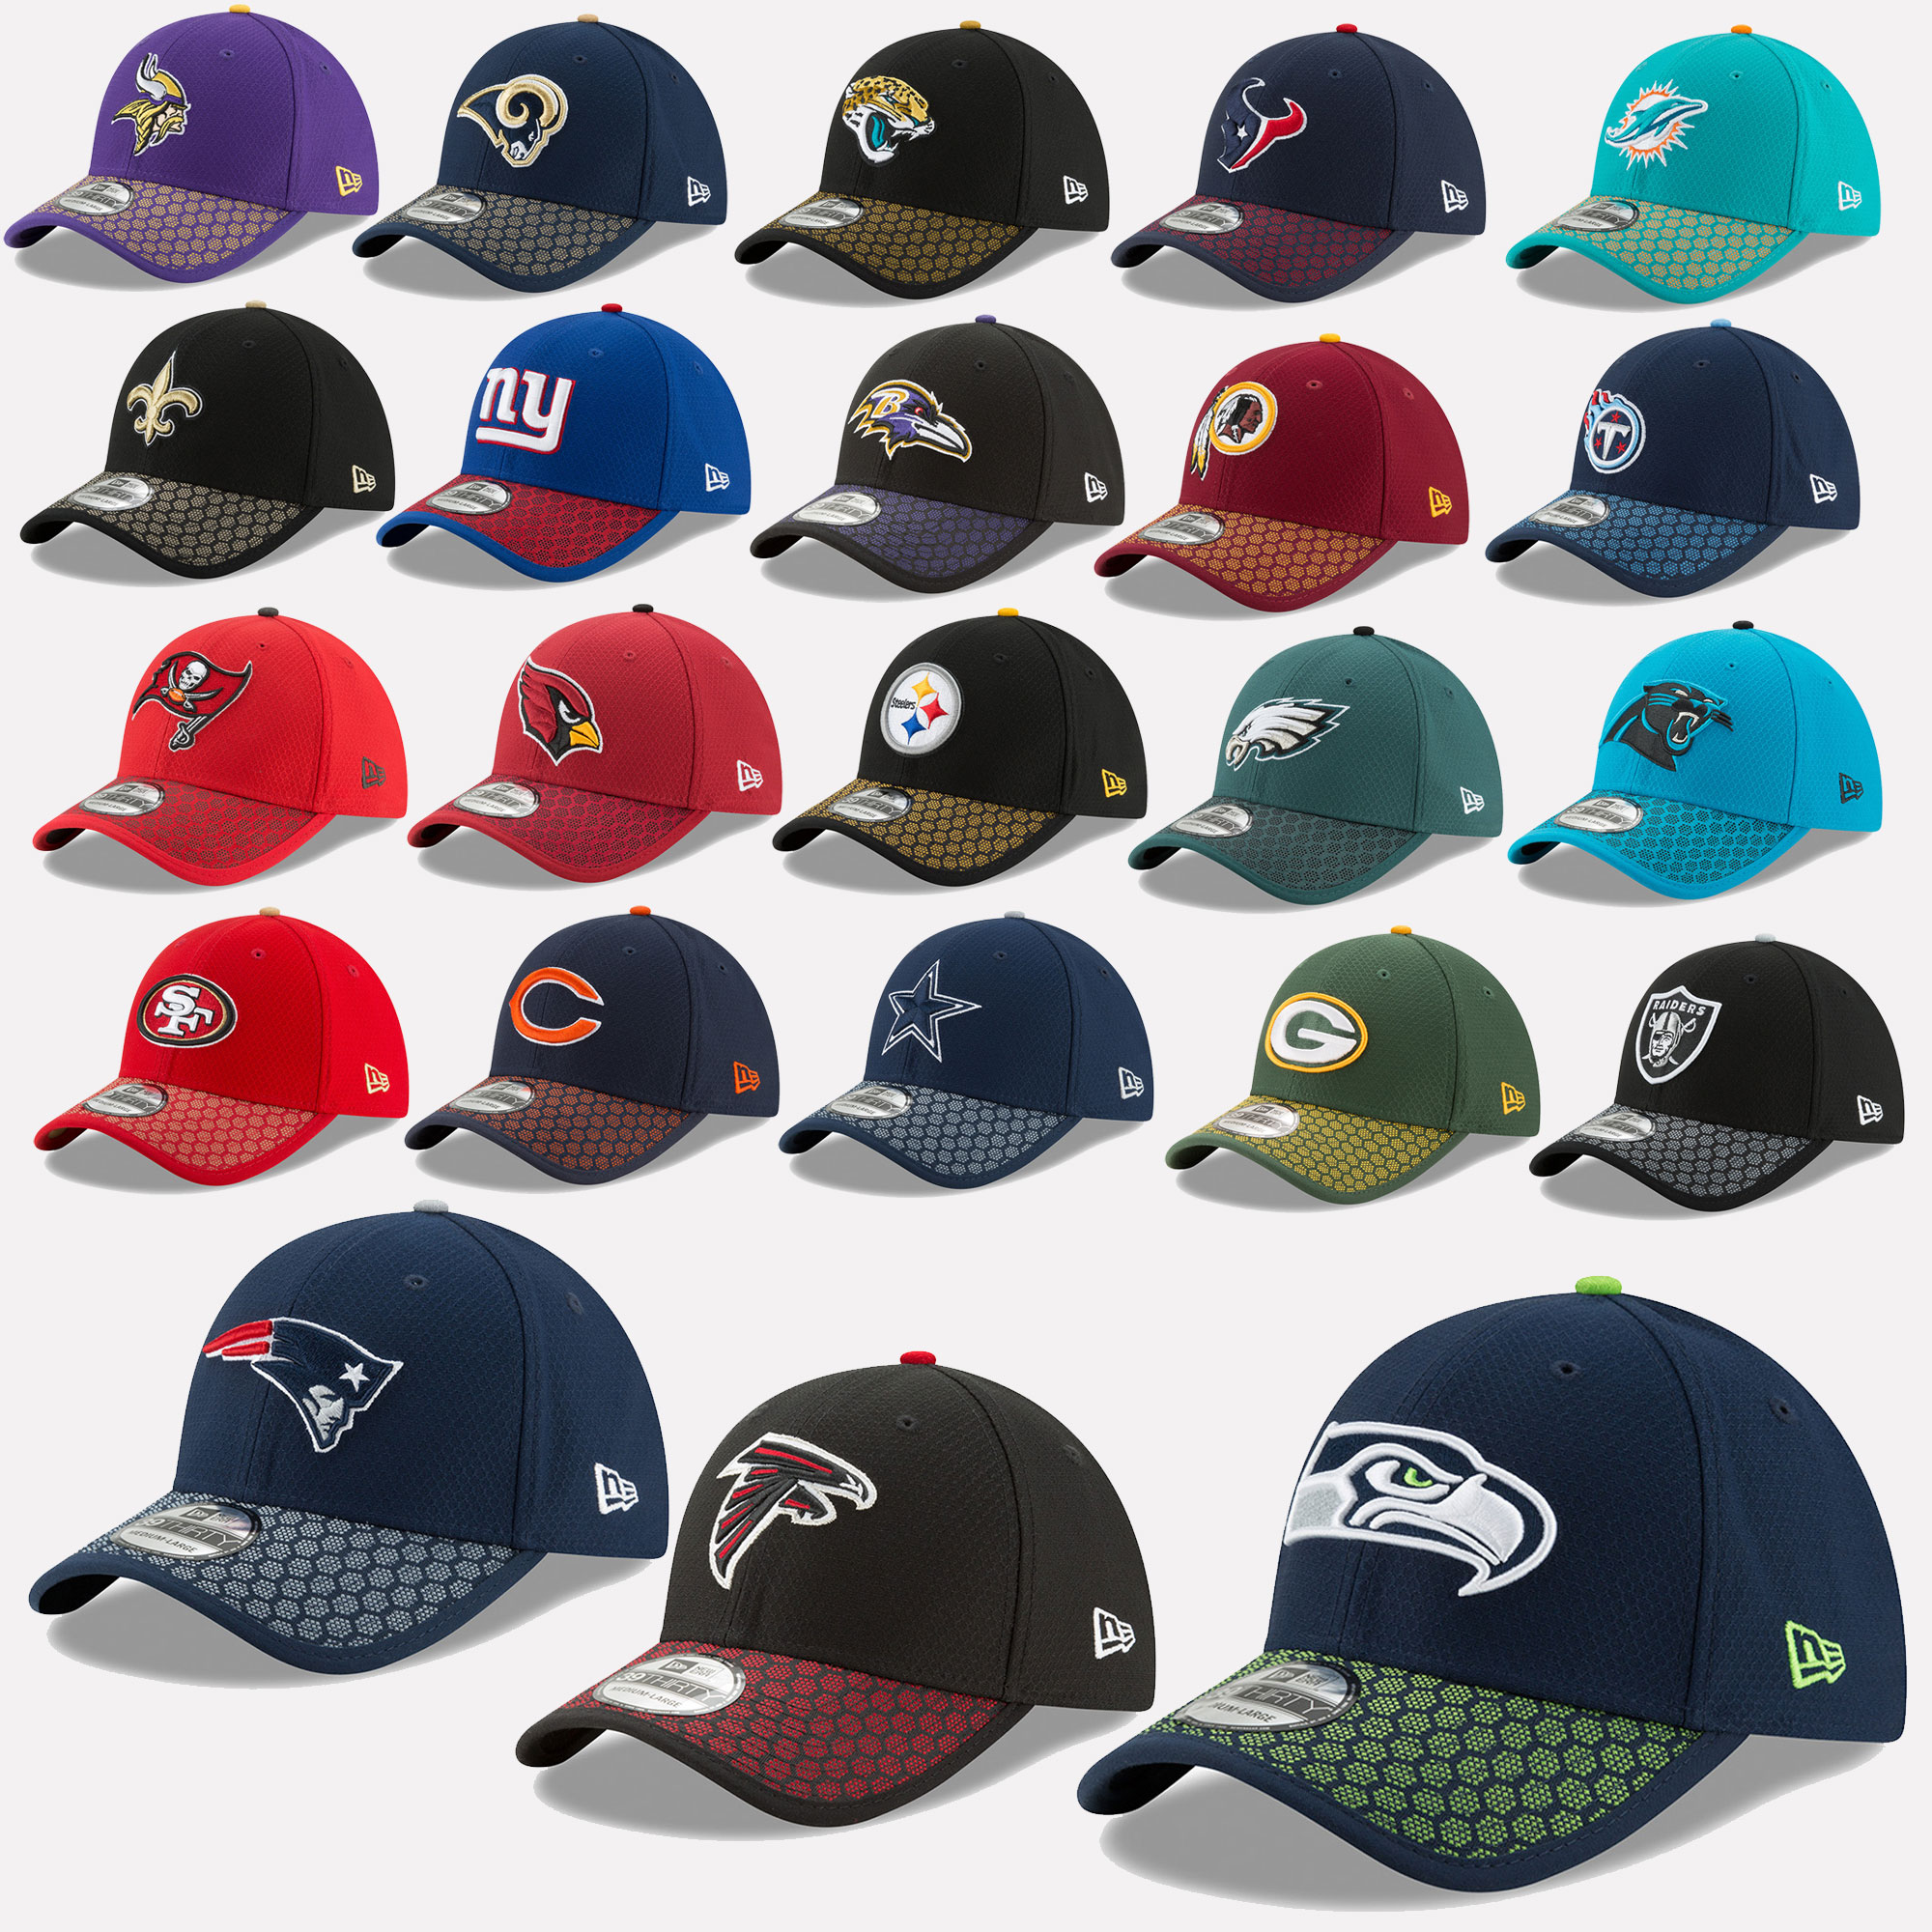 New Era Cap 39THIRTY NFL Sideline 2017 Seahawks Patriots Raiders ... 4f62abf100f